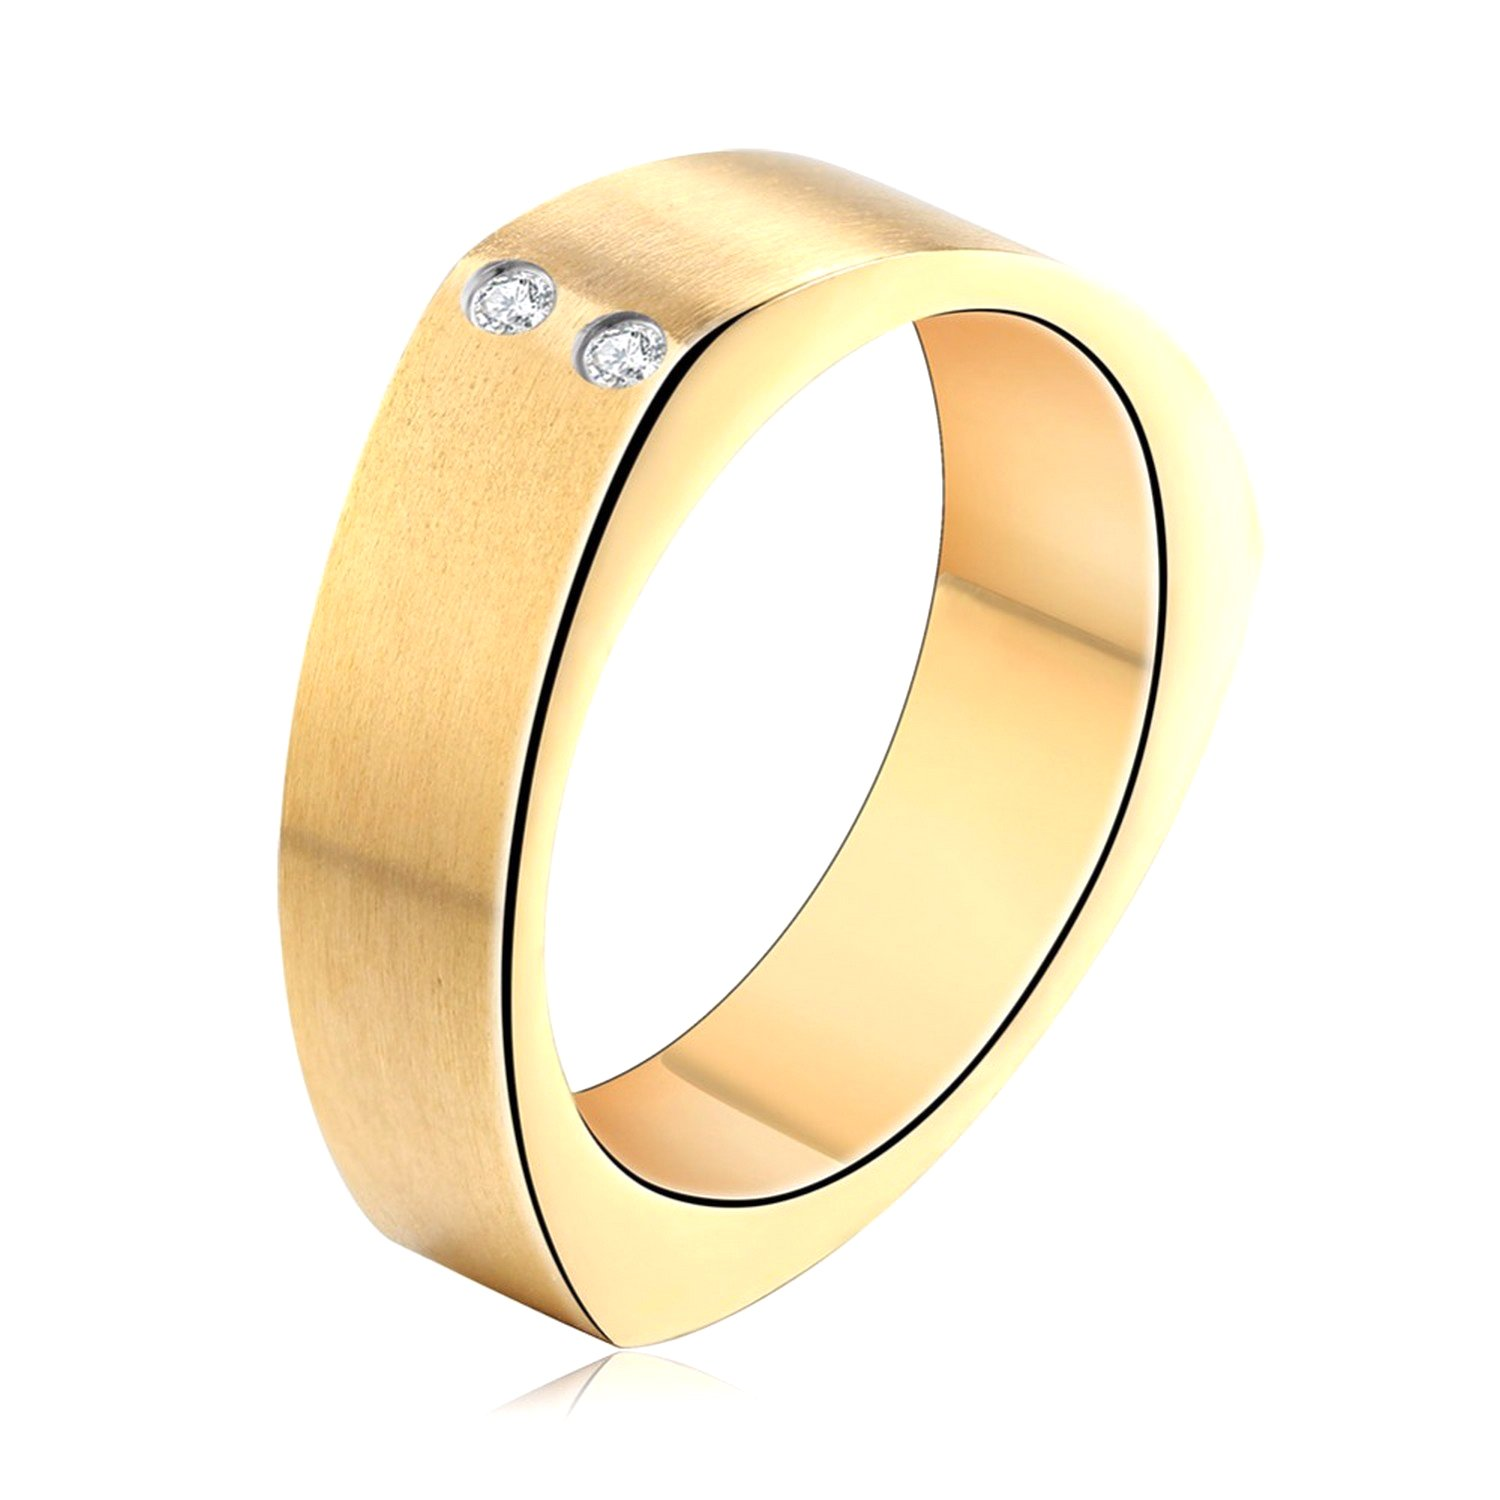 Slyq Jewelry Gold Silver Black 3 Color Women Stainless Steel rose gold engagement ring fashion ring sets